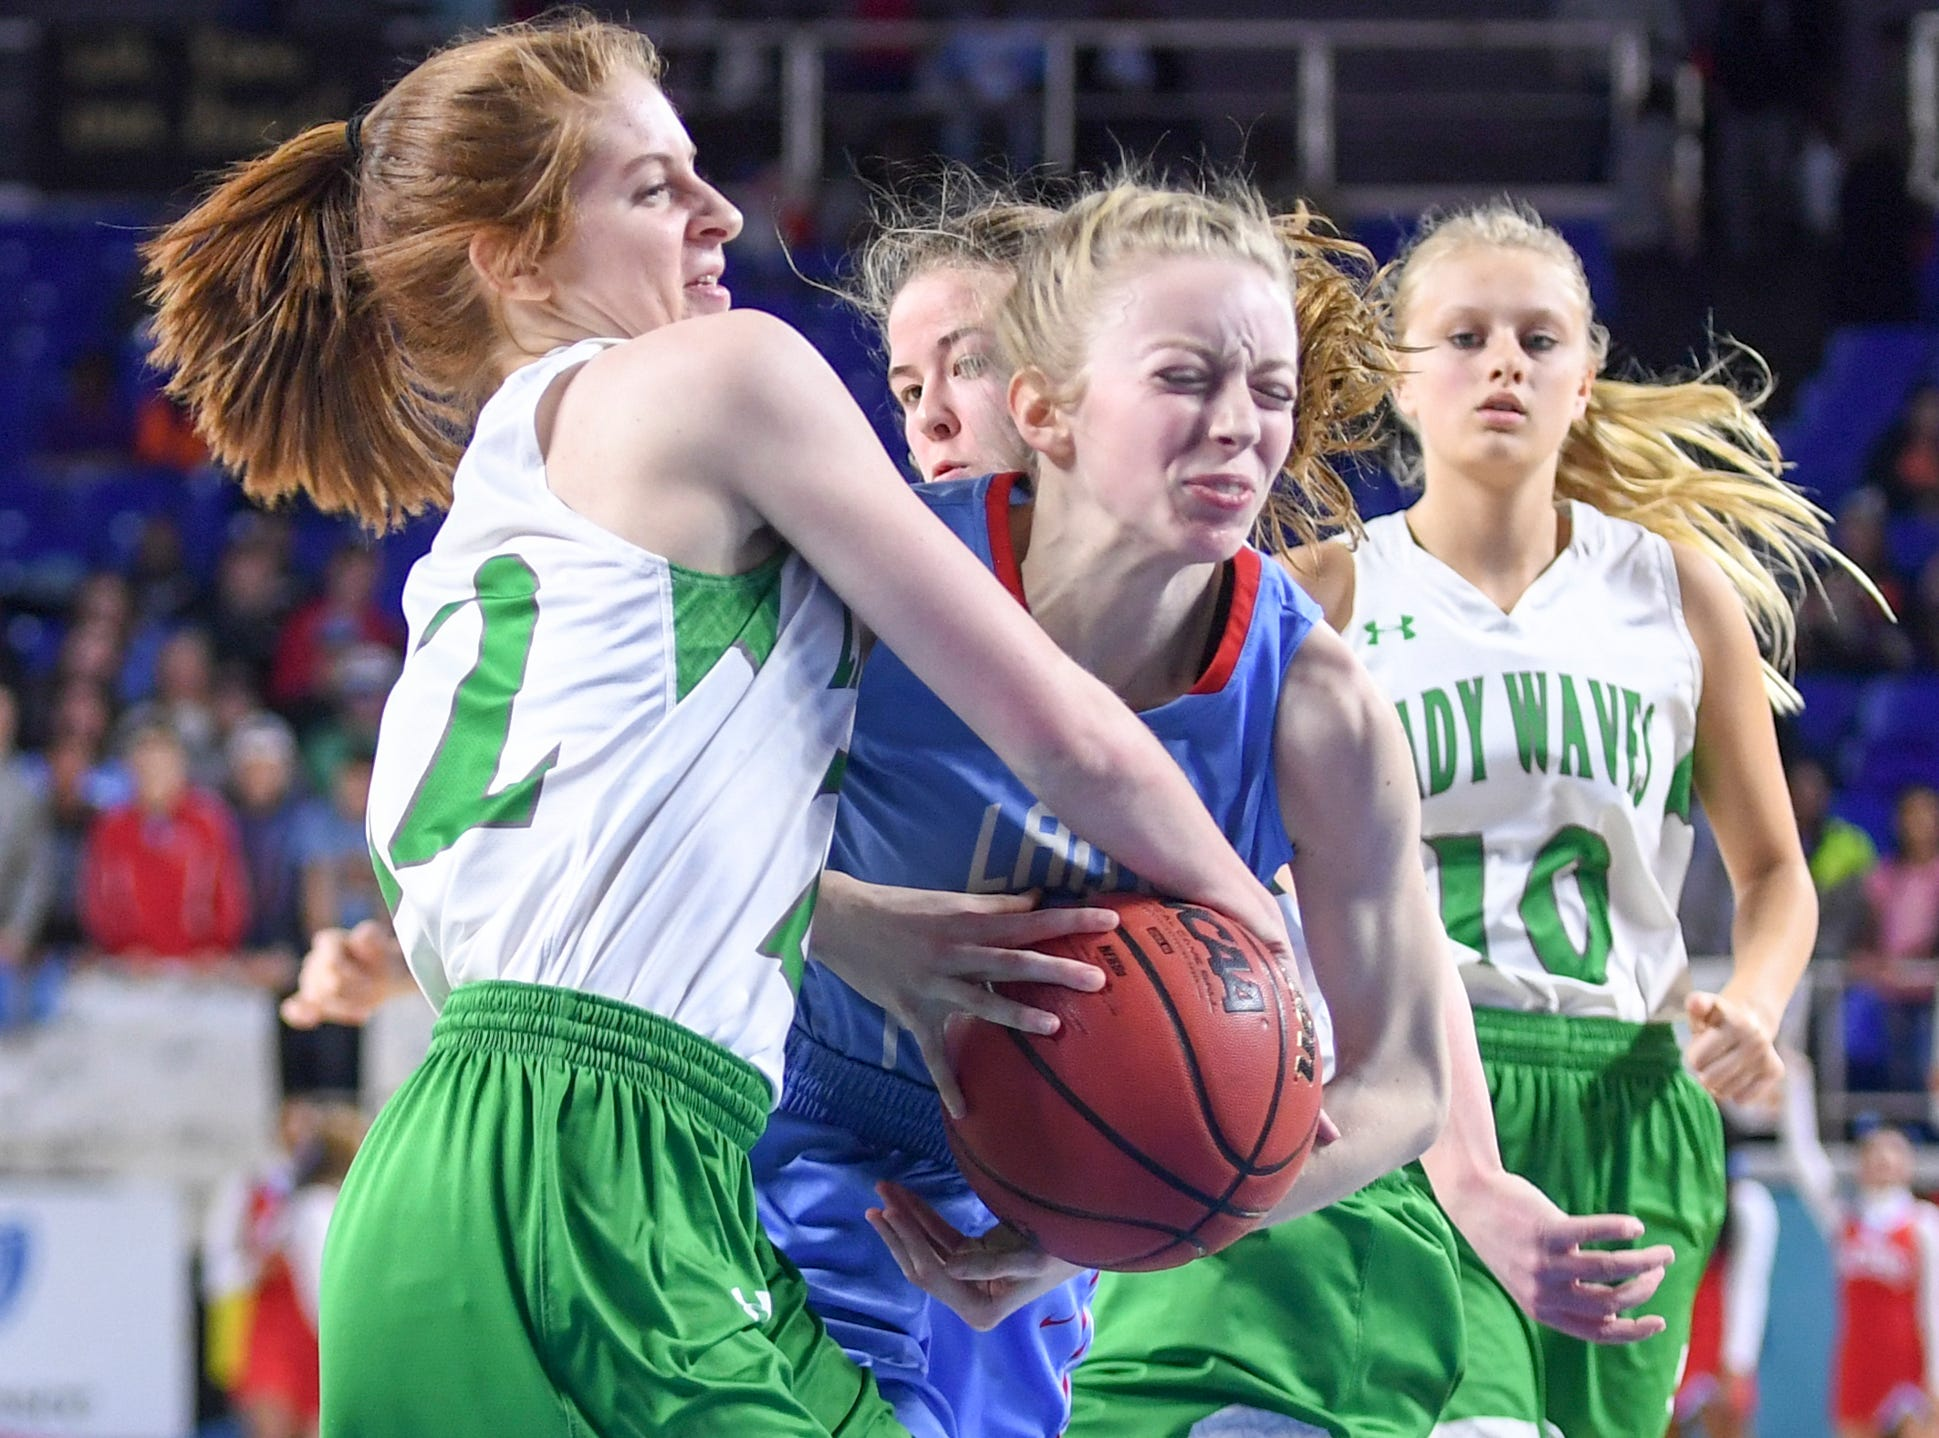 Gibson County's KJ White (32) attempts to go past Midway's Emily Cawood (22) during their Class A semifinal game, Friday, March 8, 2019, in  Murfreesboro.